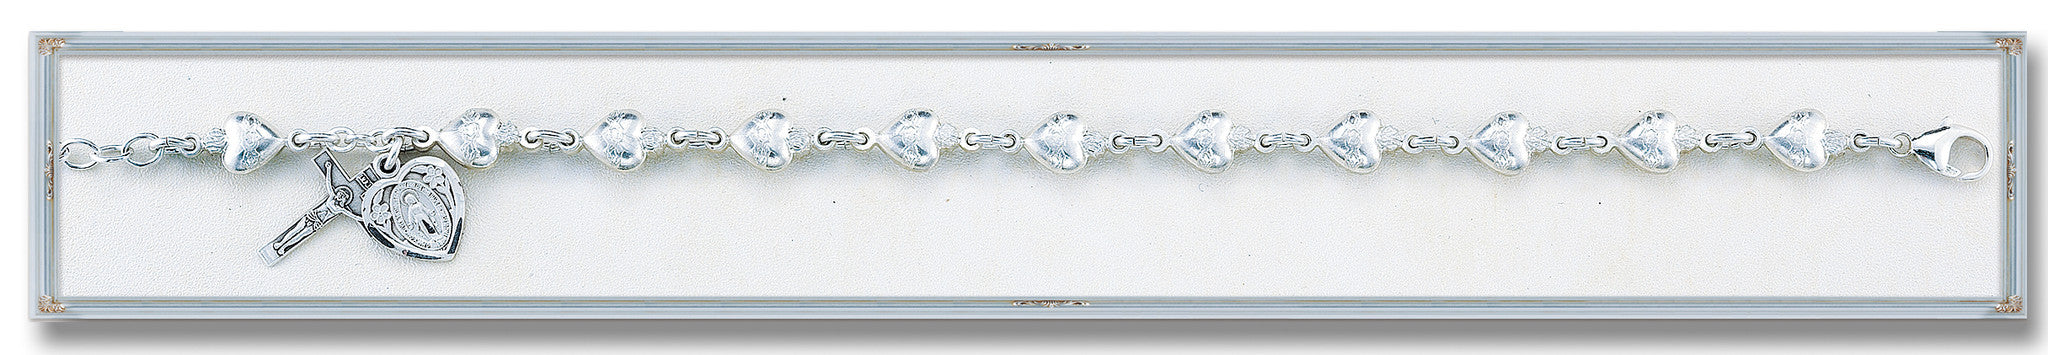 ornate_silver_miraculous_medals_bracelet